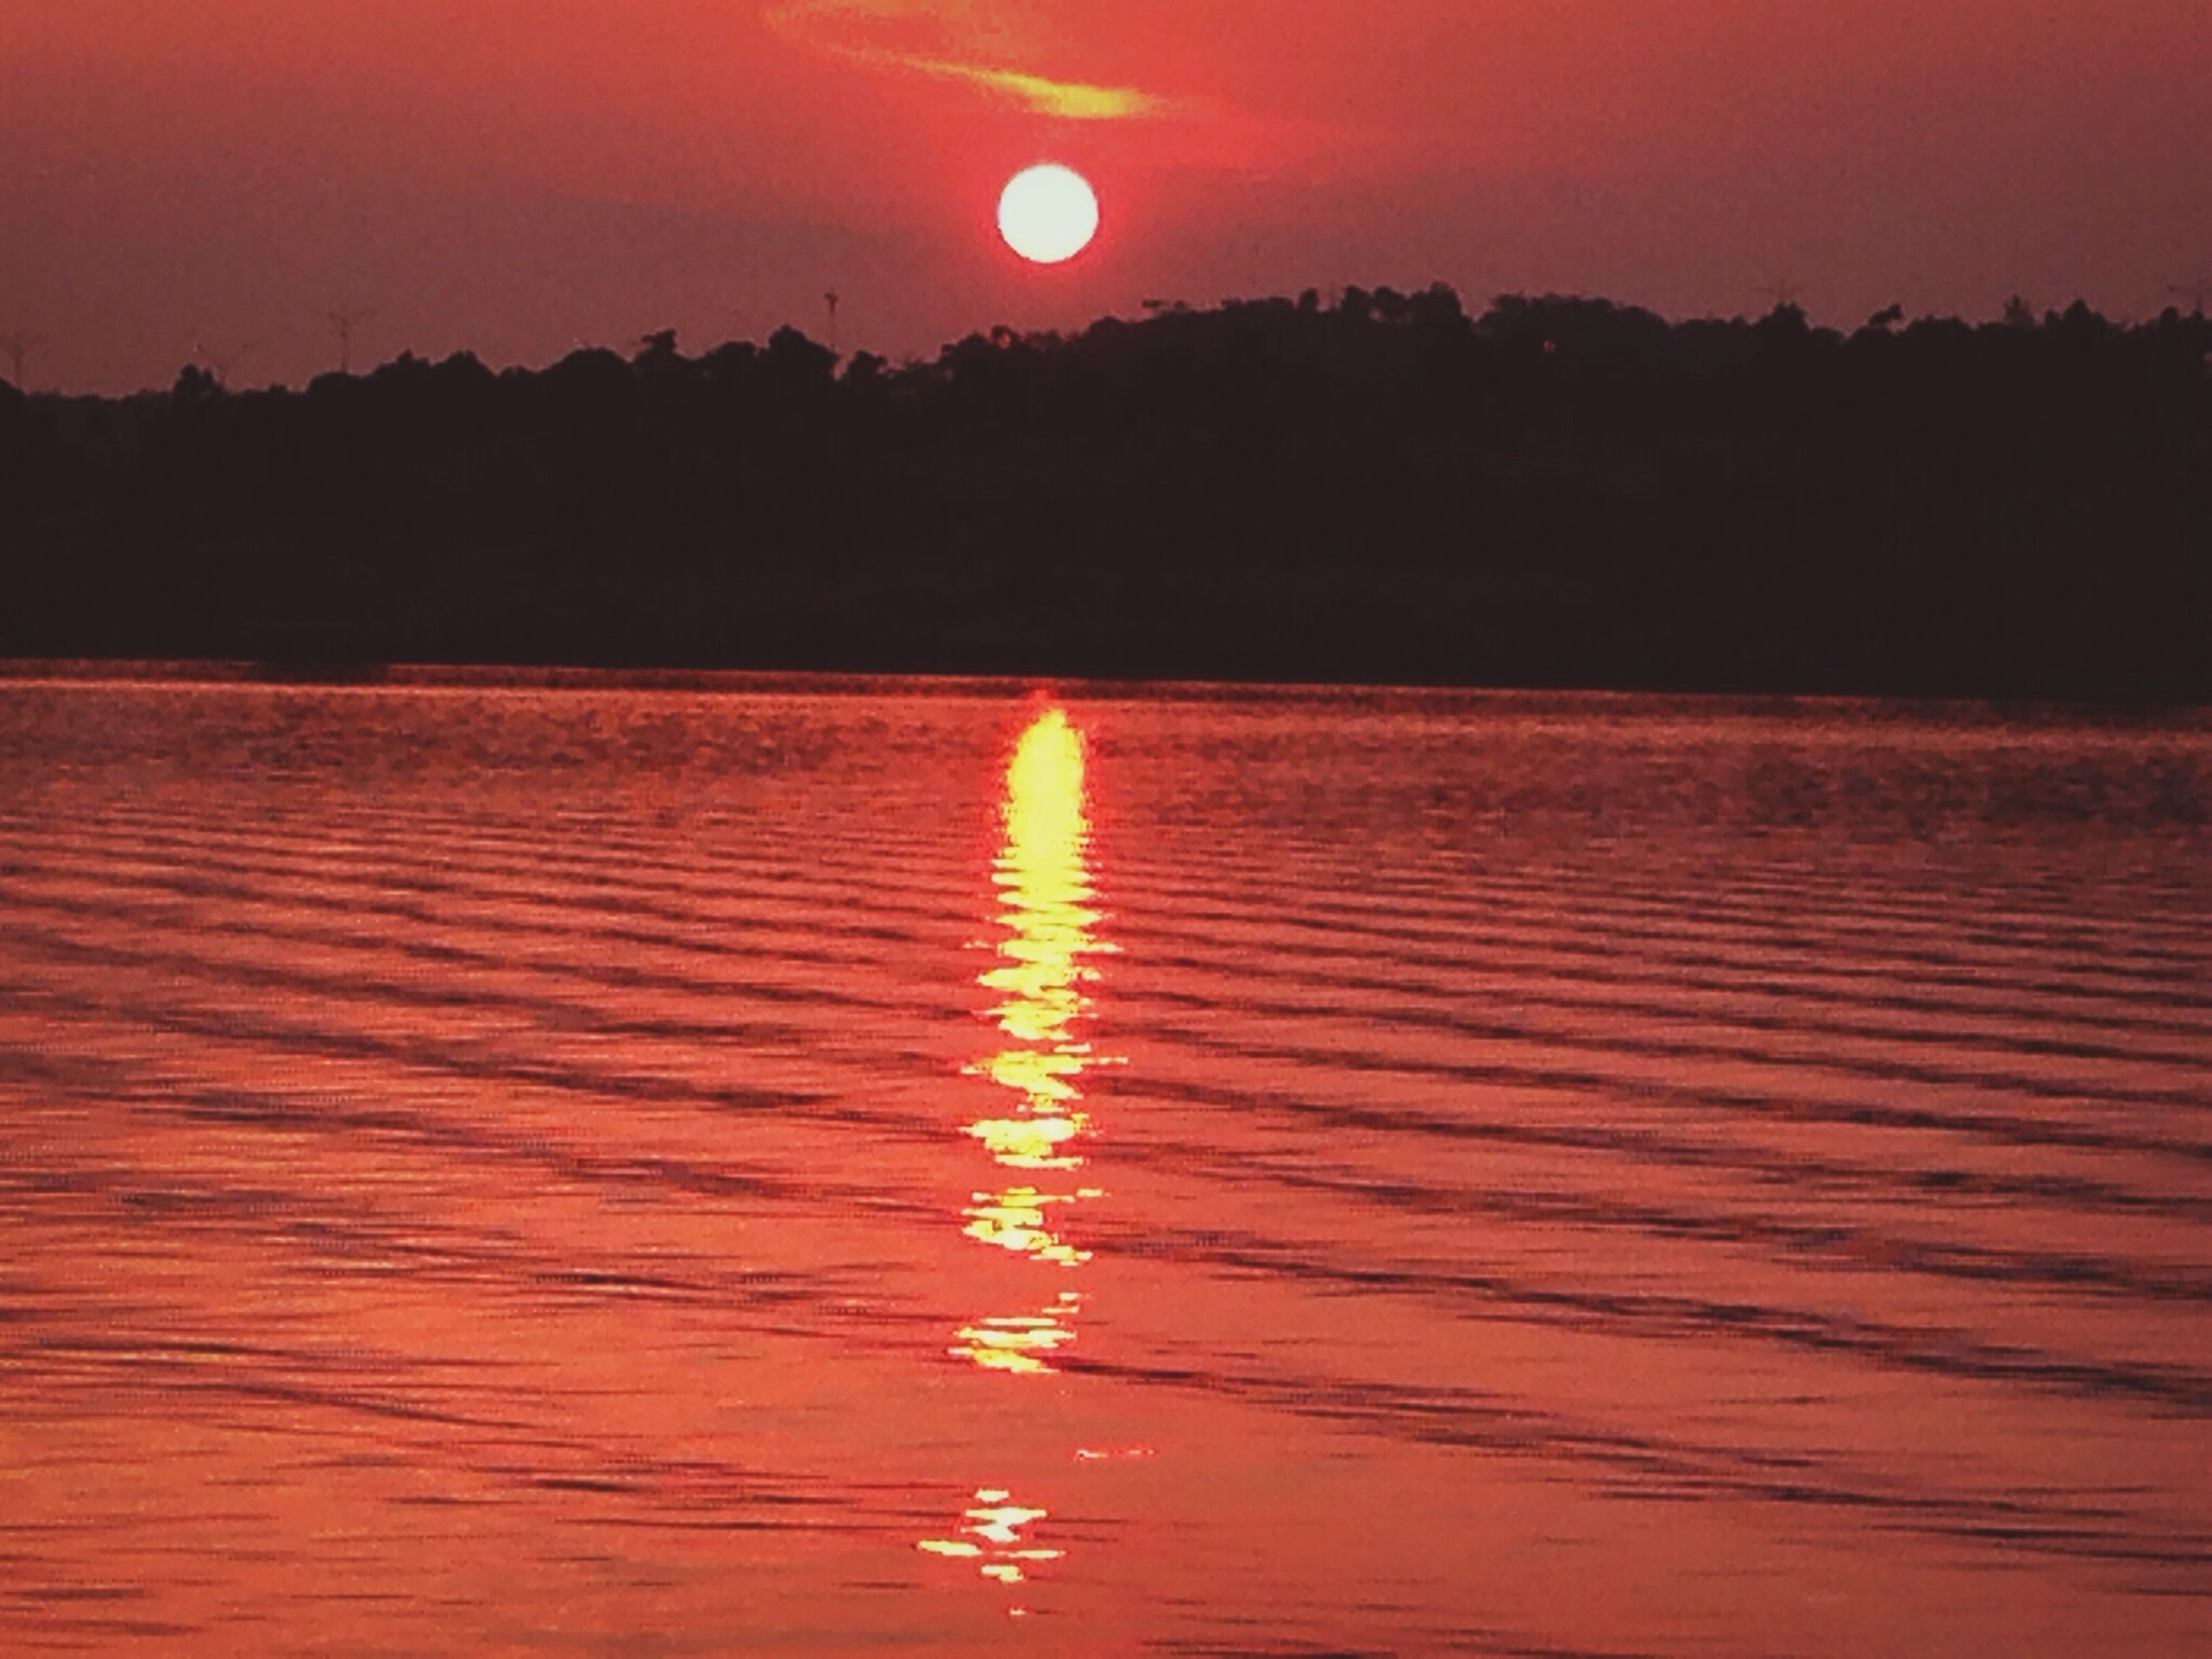 water, sunset, reflection, tranquil scene, scenics, tranquility, orange color, beauty in nature, sun, waterfront, red, idyllic, rippled, lake, sky, nature, silhouette, non-urban scene, outdoors, no people